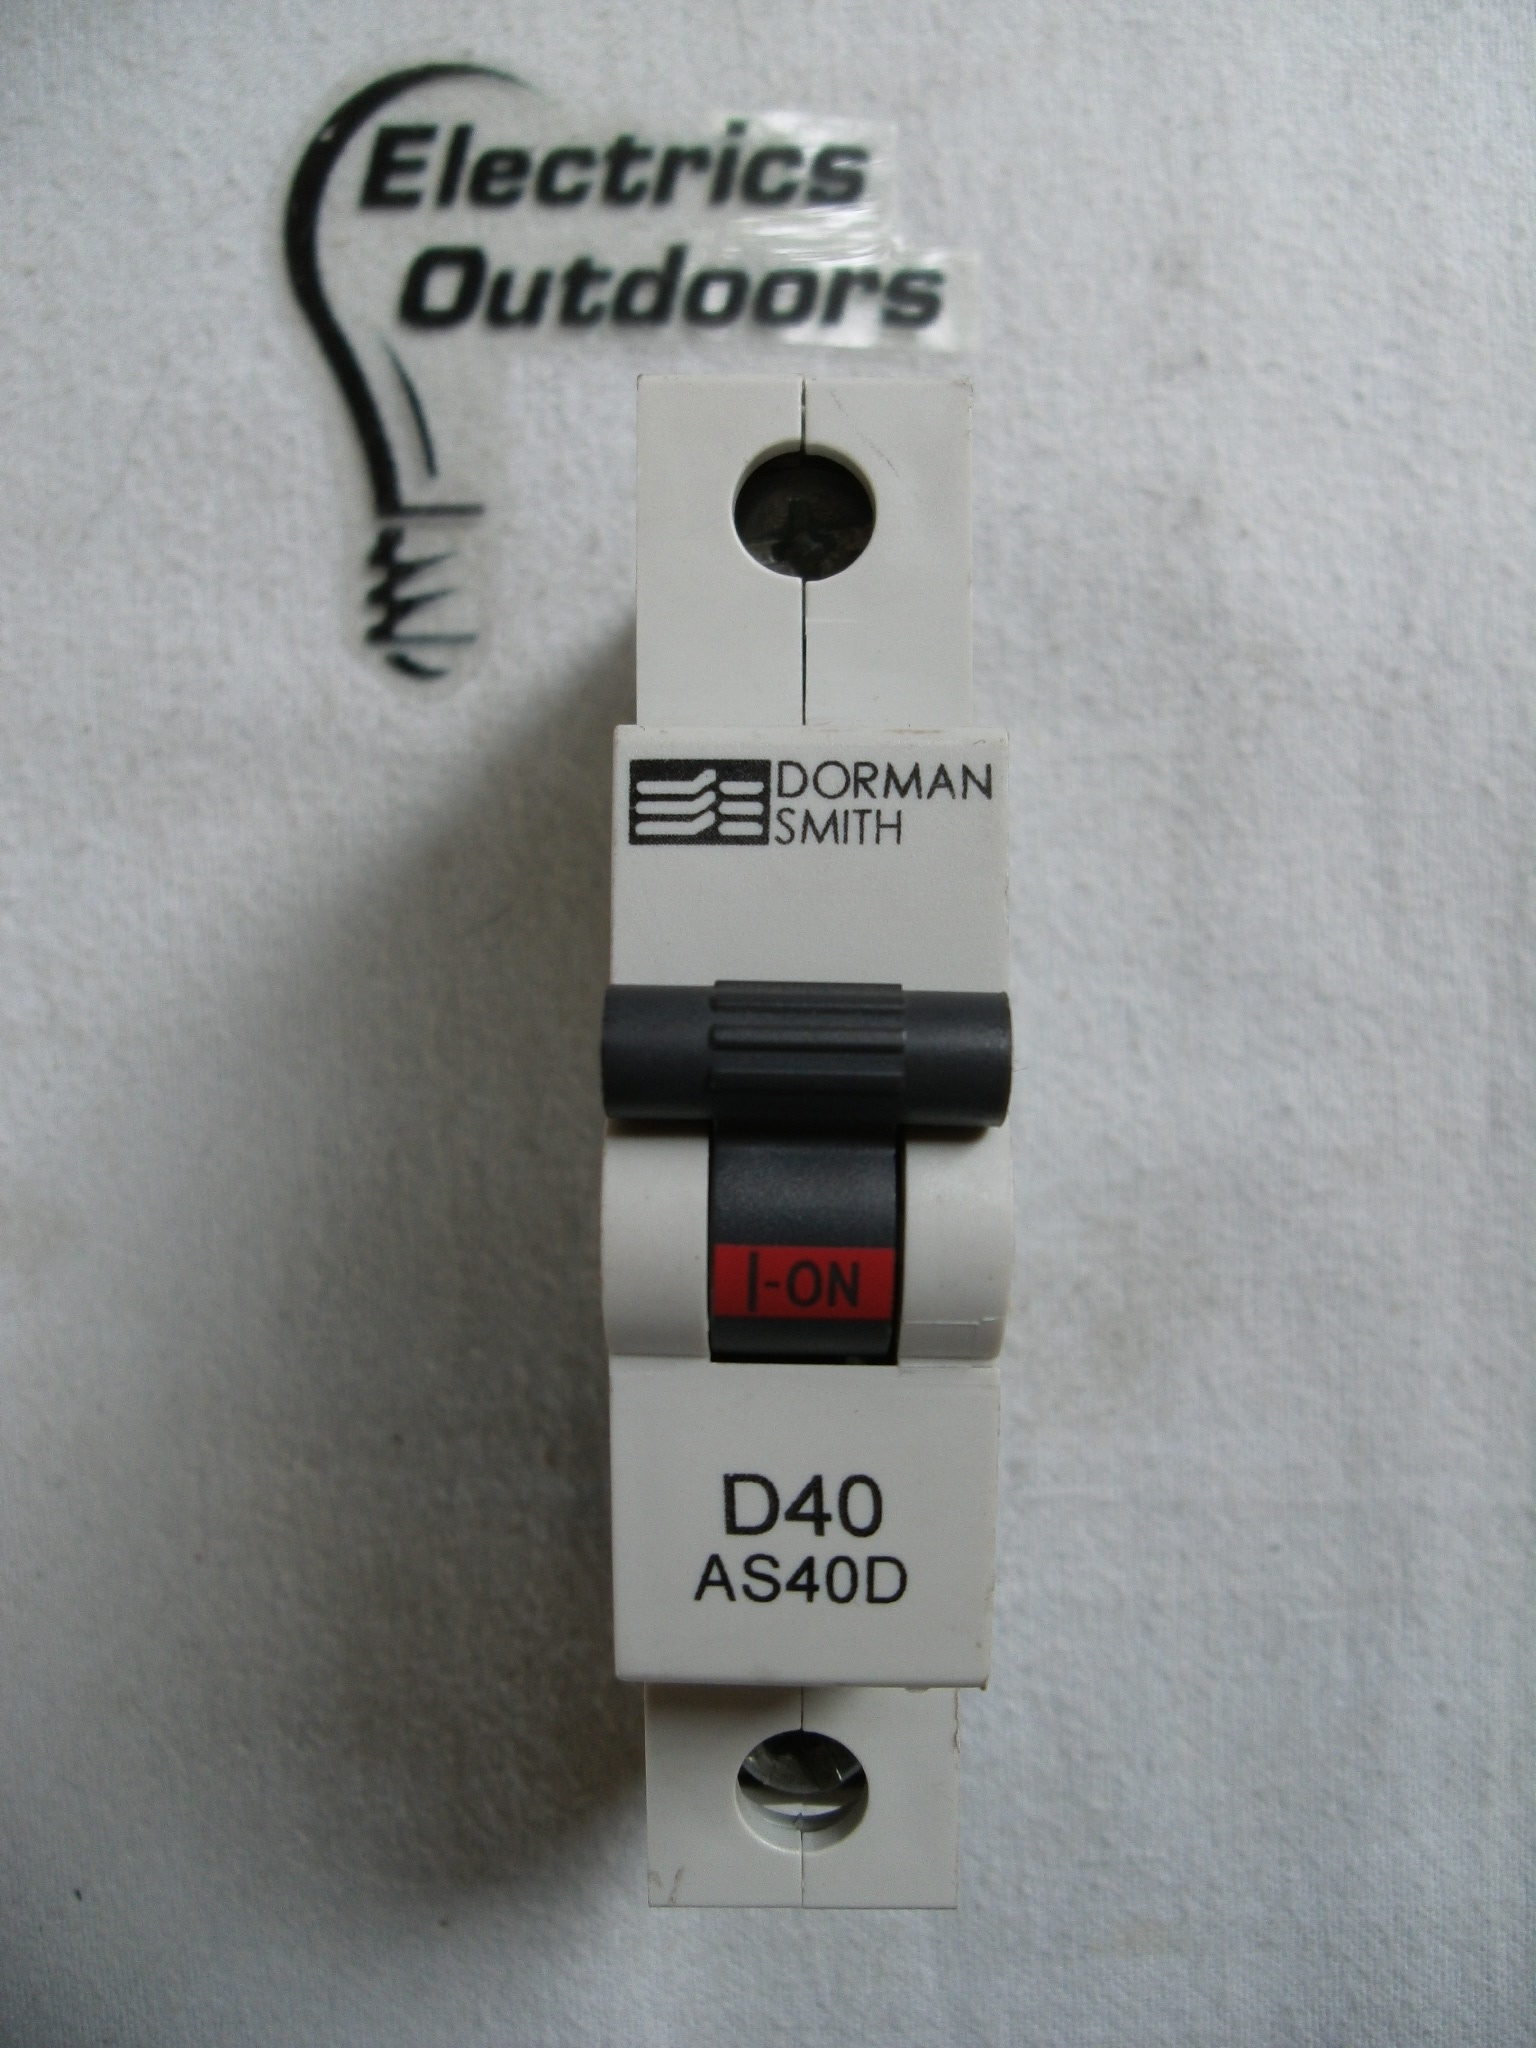 DORMAN SMITH 40 AMP TYPE D 6 kA MCB CIRCUIT BREAKER 230/400V AS40D BS EN 60898